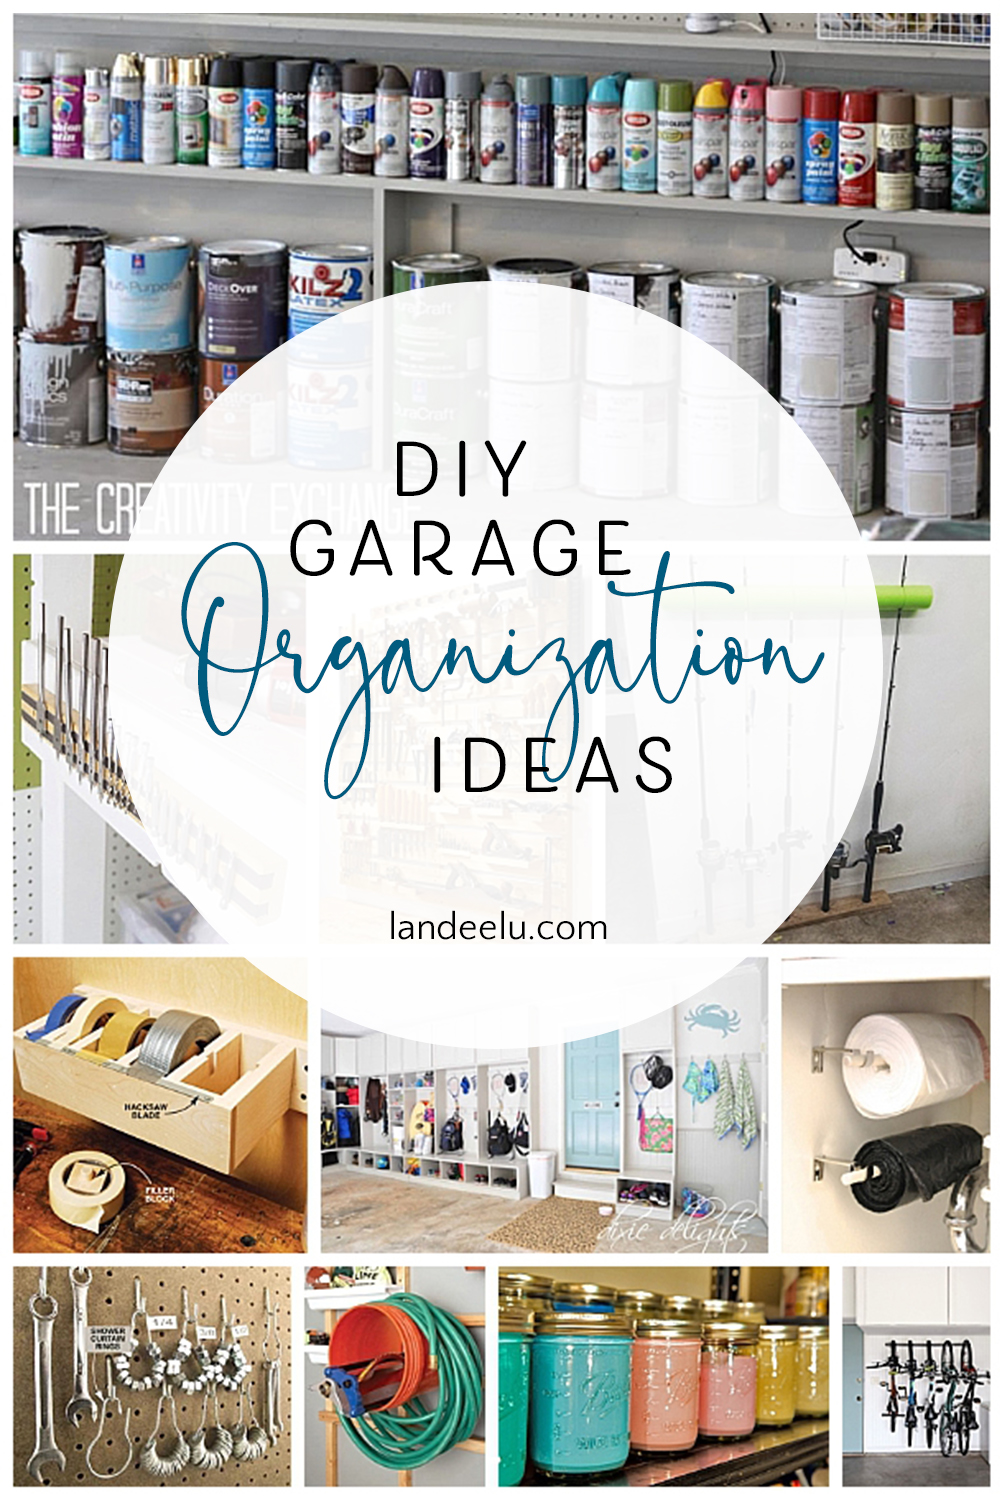 So many awesome DIY garage organization ideas. I needed these! #garageorganization #organize #organizingideas #garageideas